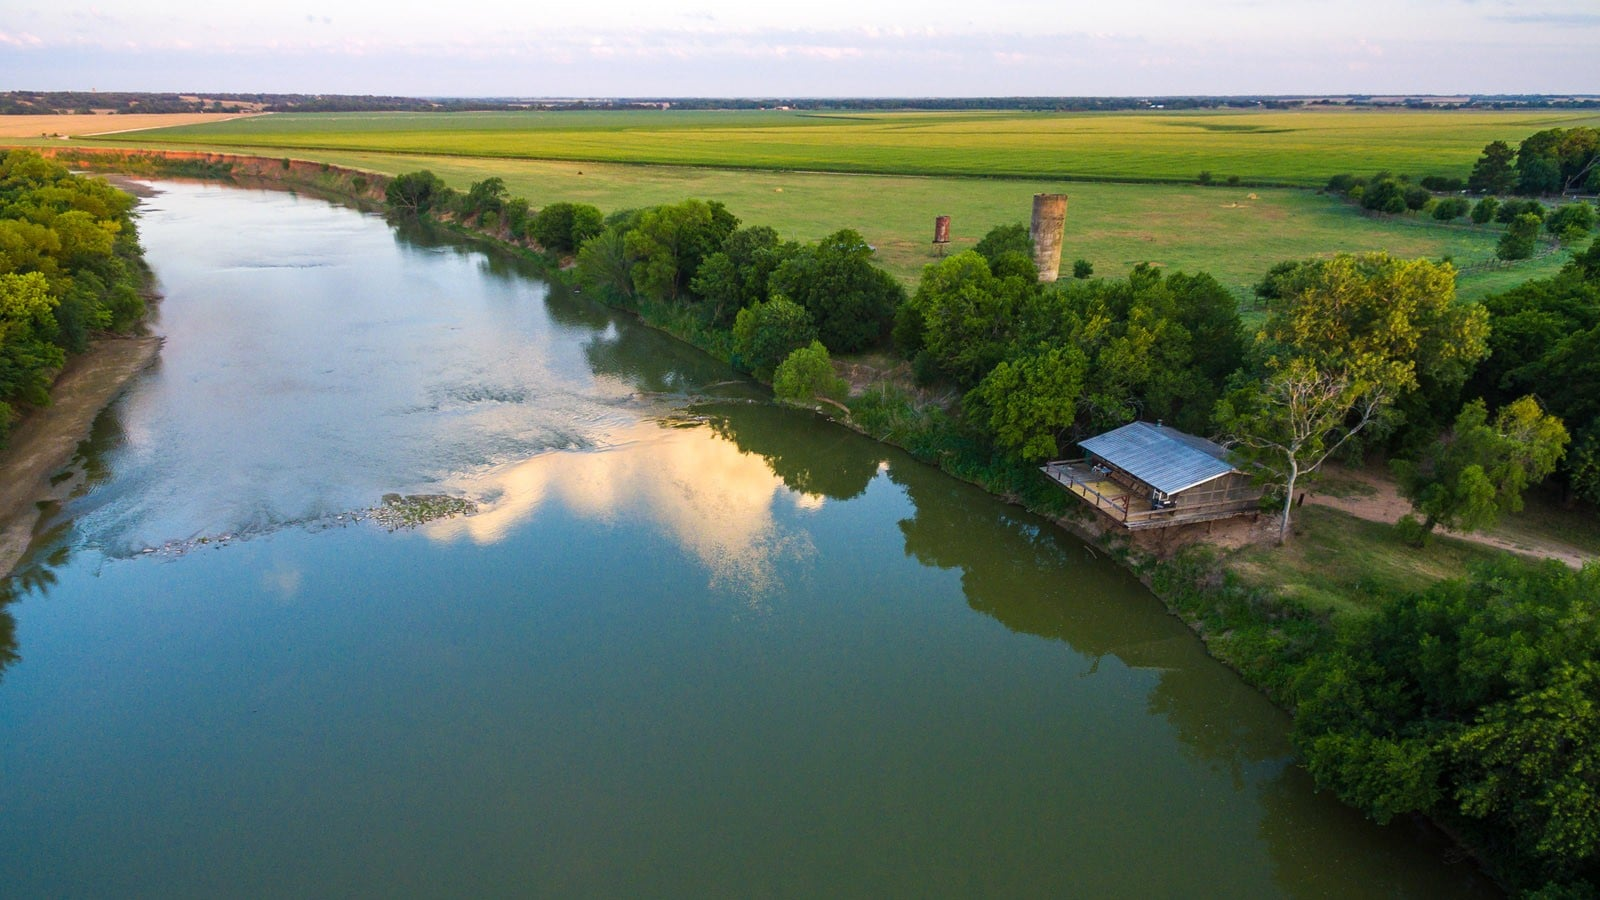 aerial view of boathouse overlooking broad river